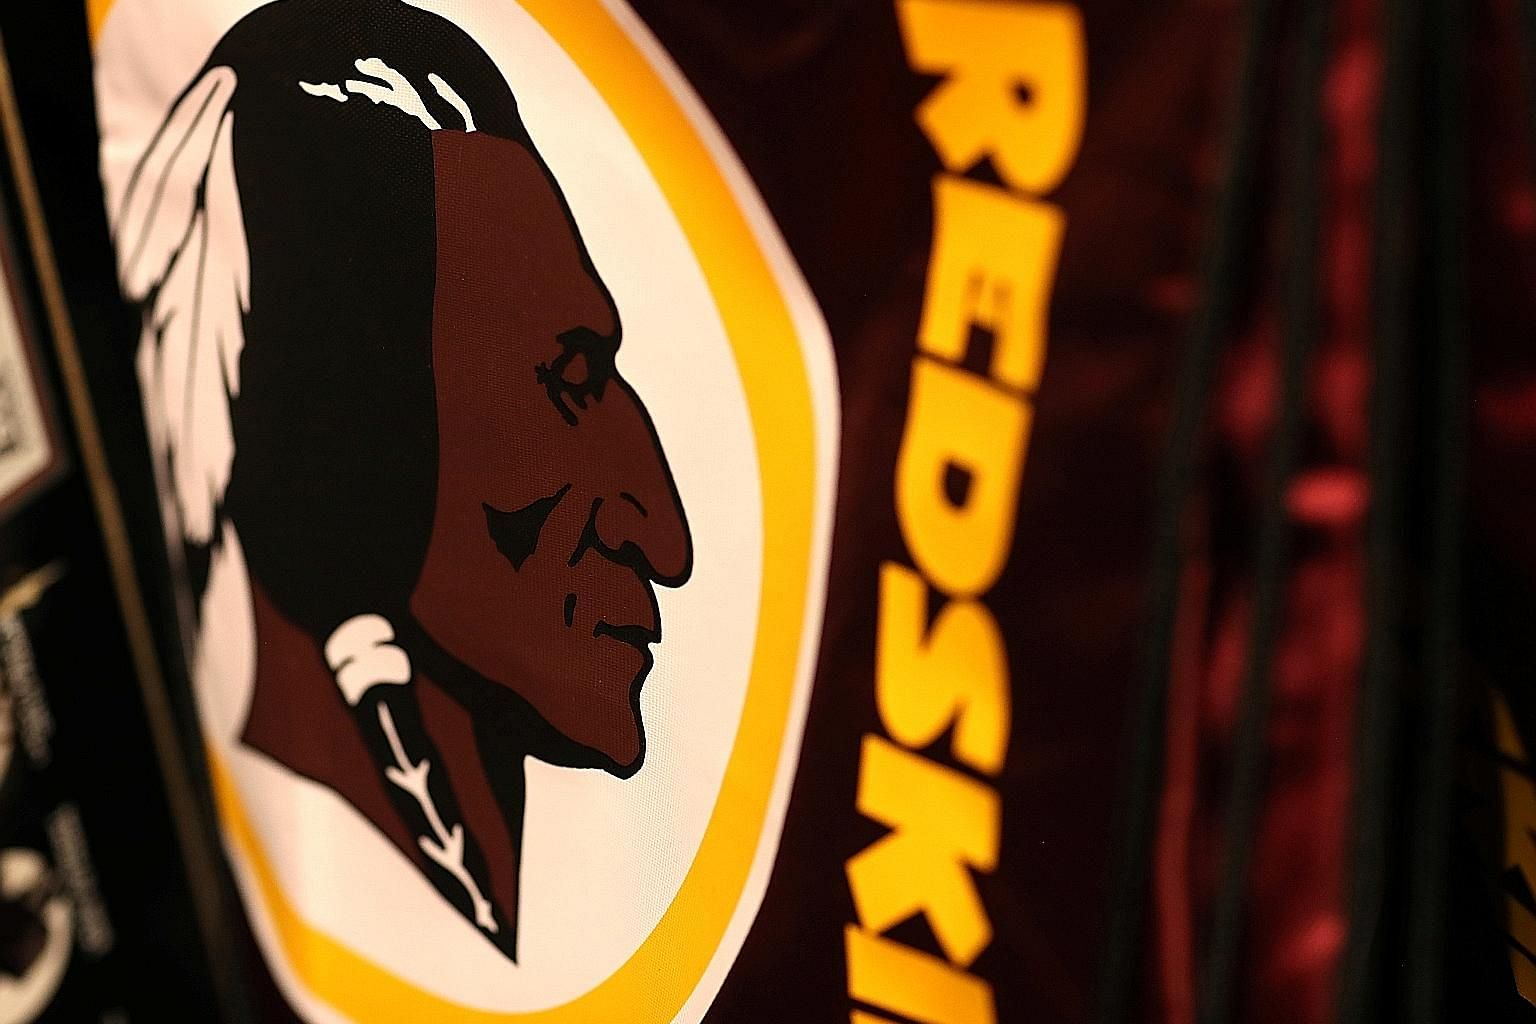 Redskins-branded merchandise on display in a sports store as the Washington NFL team announced the logo and name would no longer be used. PHOTO: REUTERS